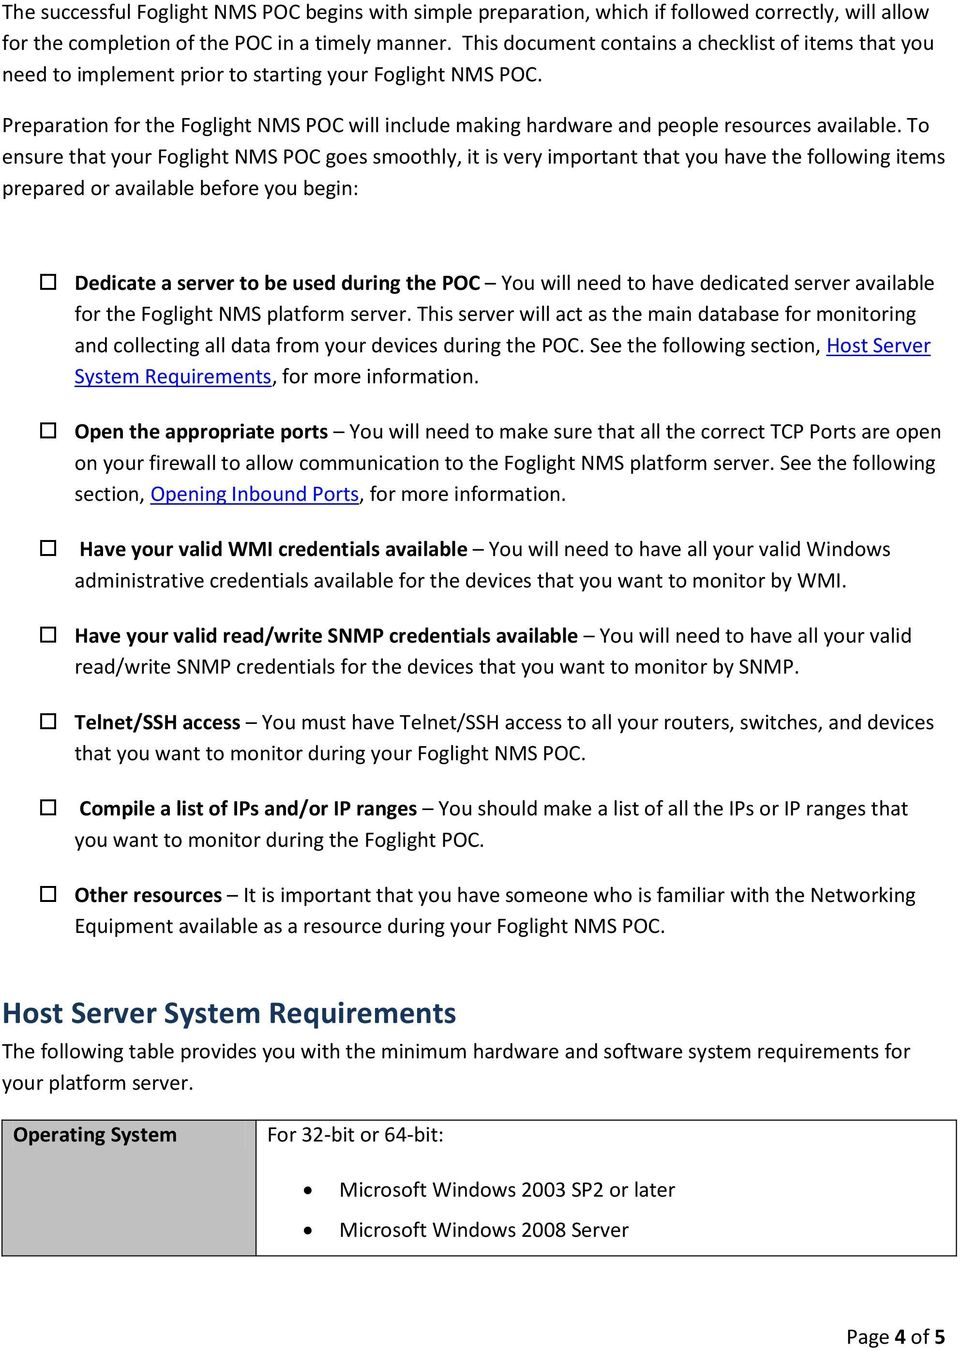 Foglight Nms Overview Pdf This Quick And Easy Technote Will Show You How To Wire Foglights Into Preparation For The Poc Include Making Hardware People Resources Available